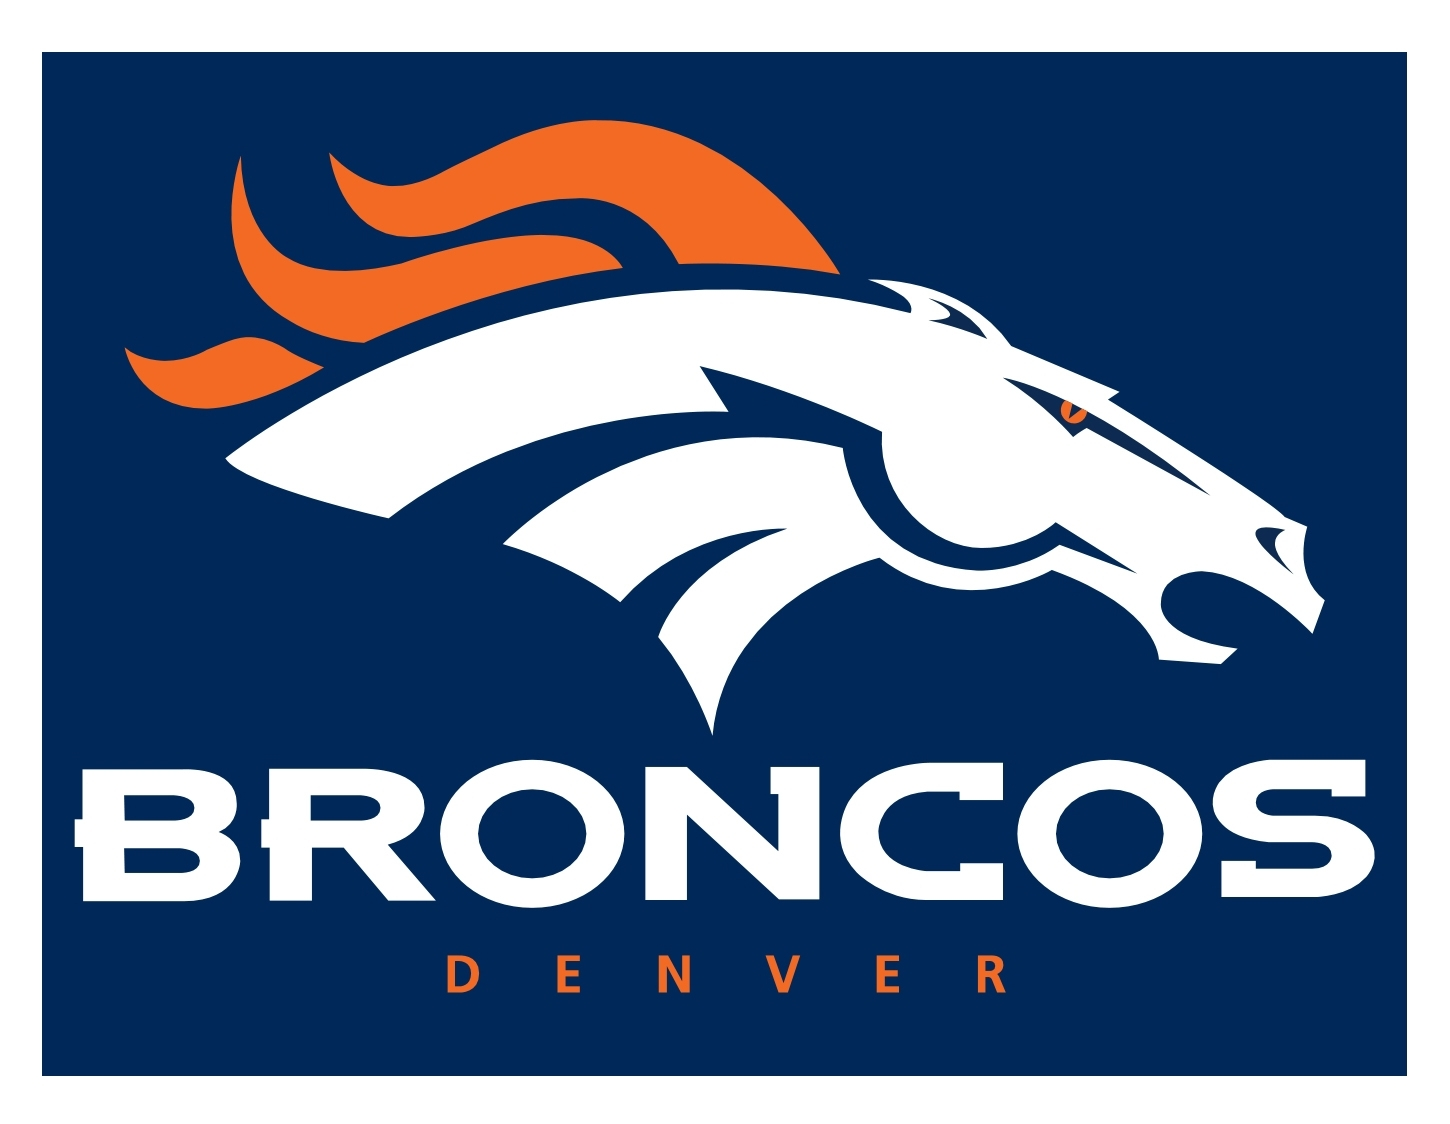 denver broncos logo | all logos world | pinterest | denver broncos